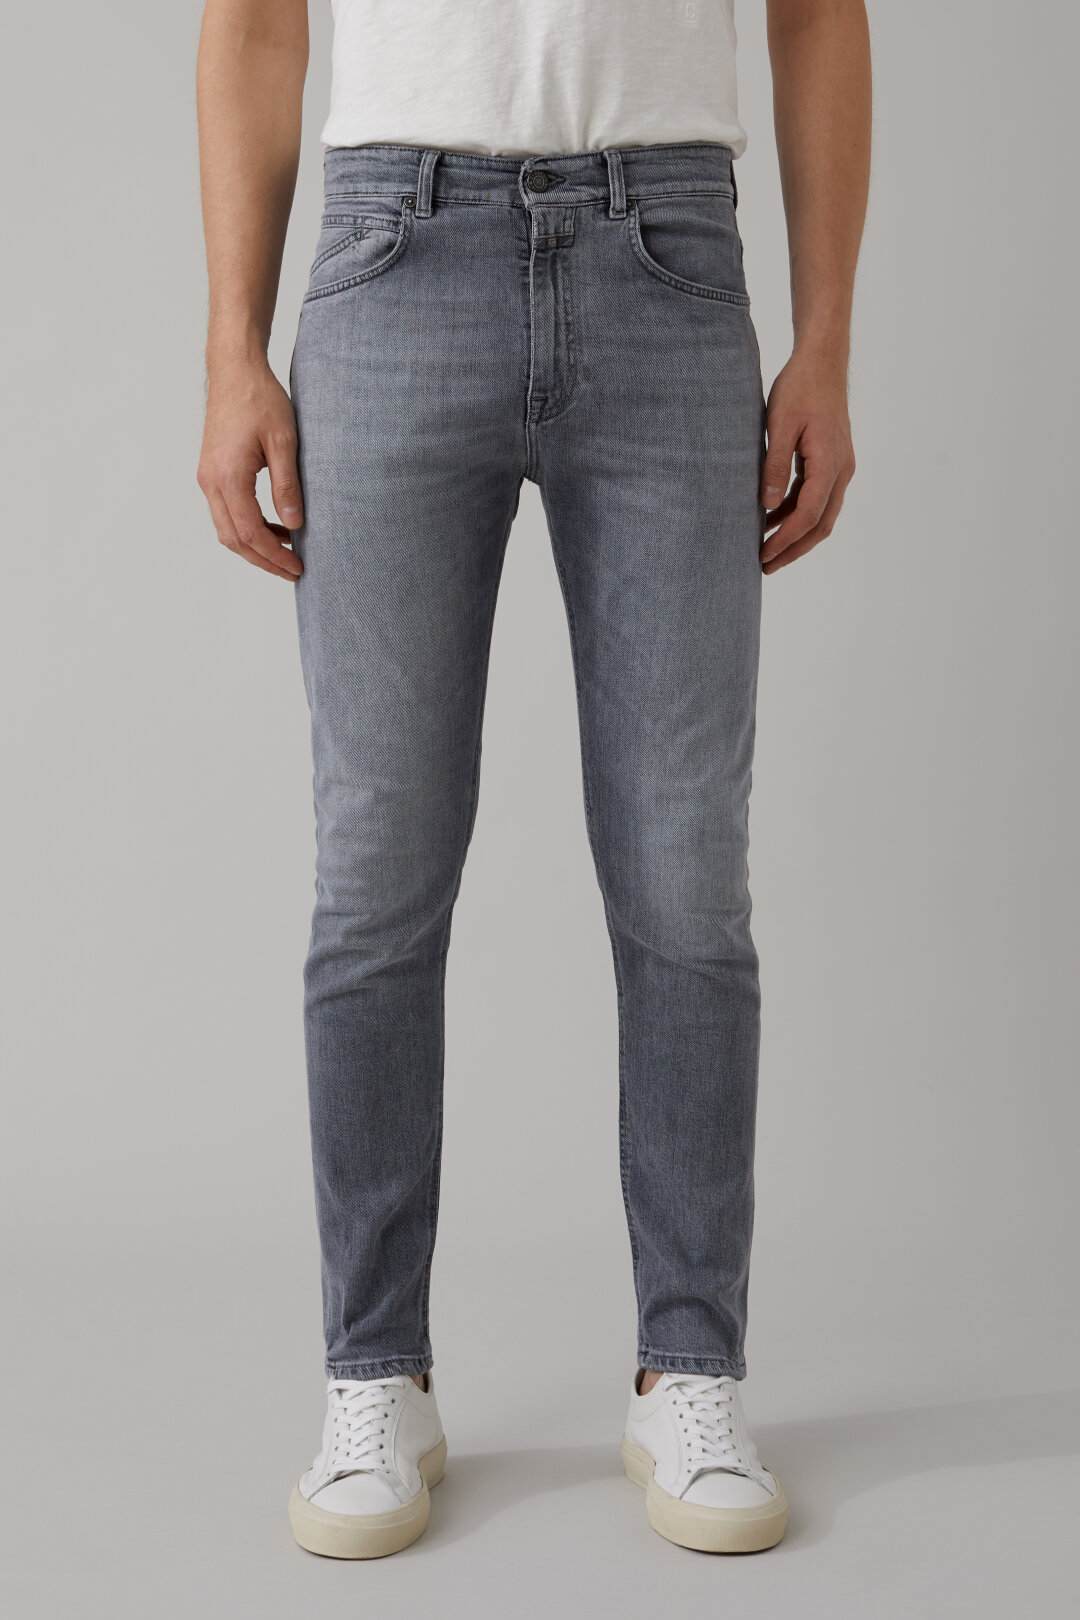 Cooper Tapered Black Denim